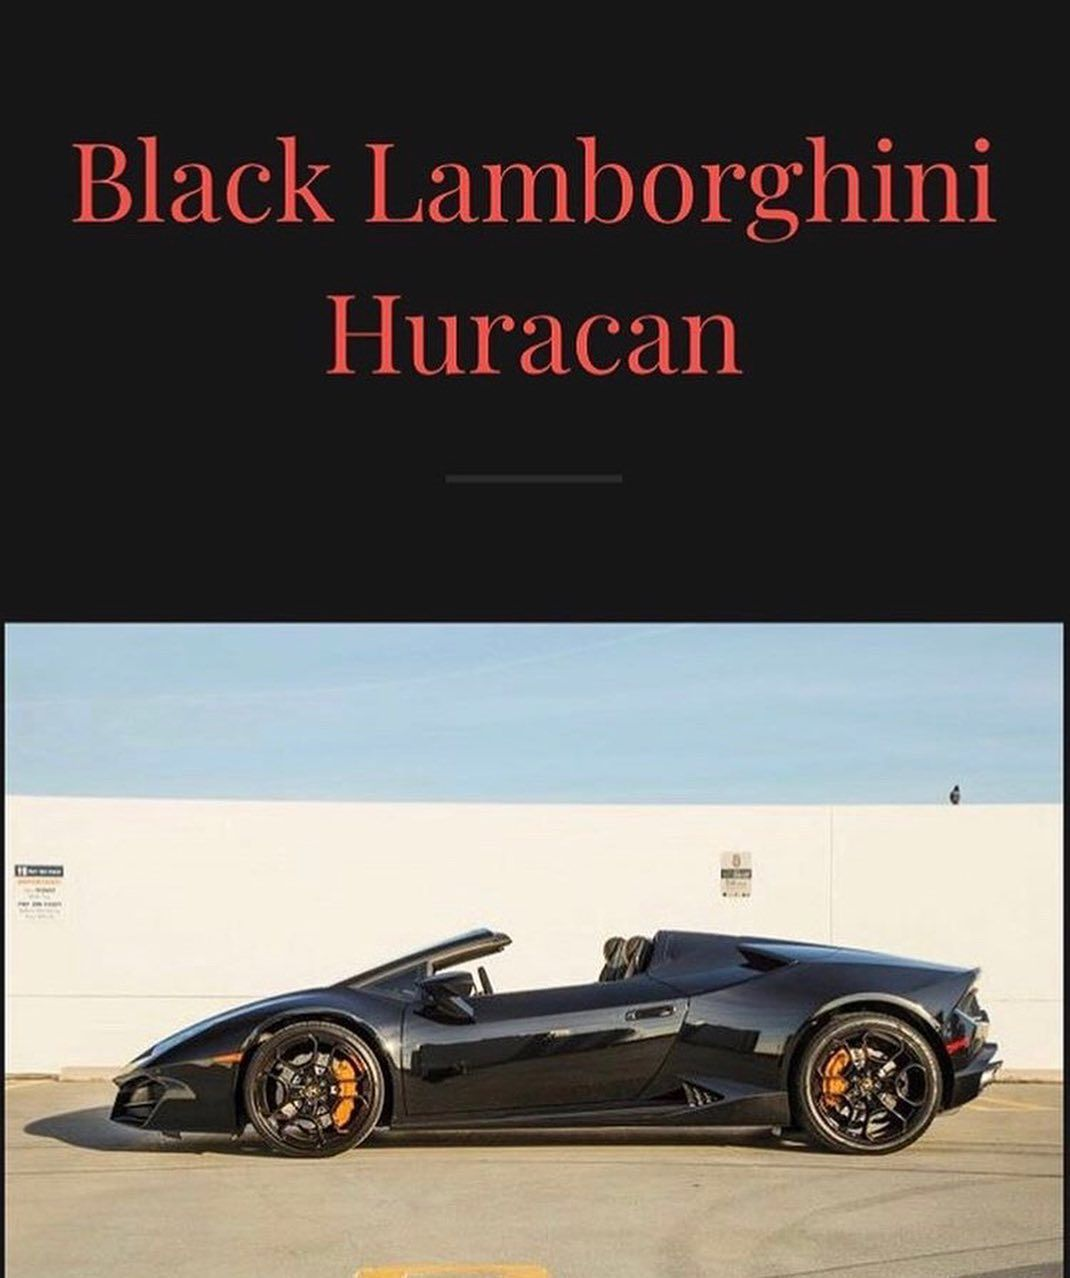 New Car Just Came In 2019 Lamborghini Hurucan 1300 00 A Day A Lot More Cars Coming In A Lot More To Rent Must Have A Valid Driver Licens Car Rental Luxury